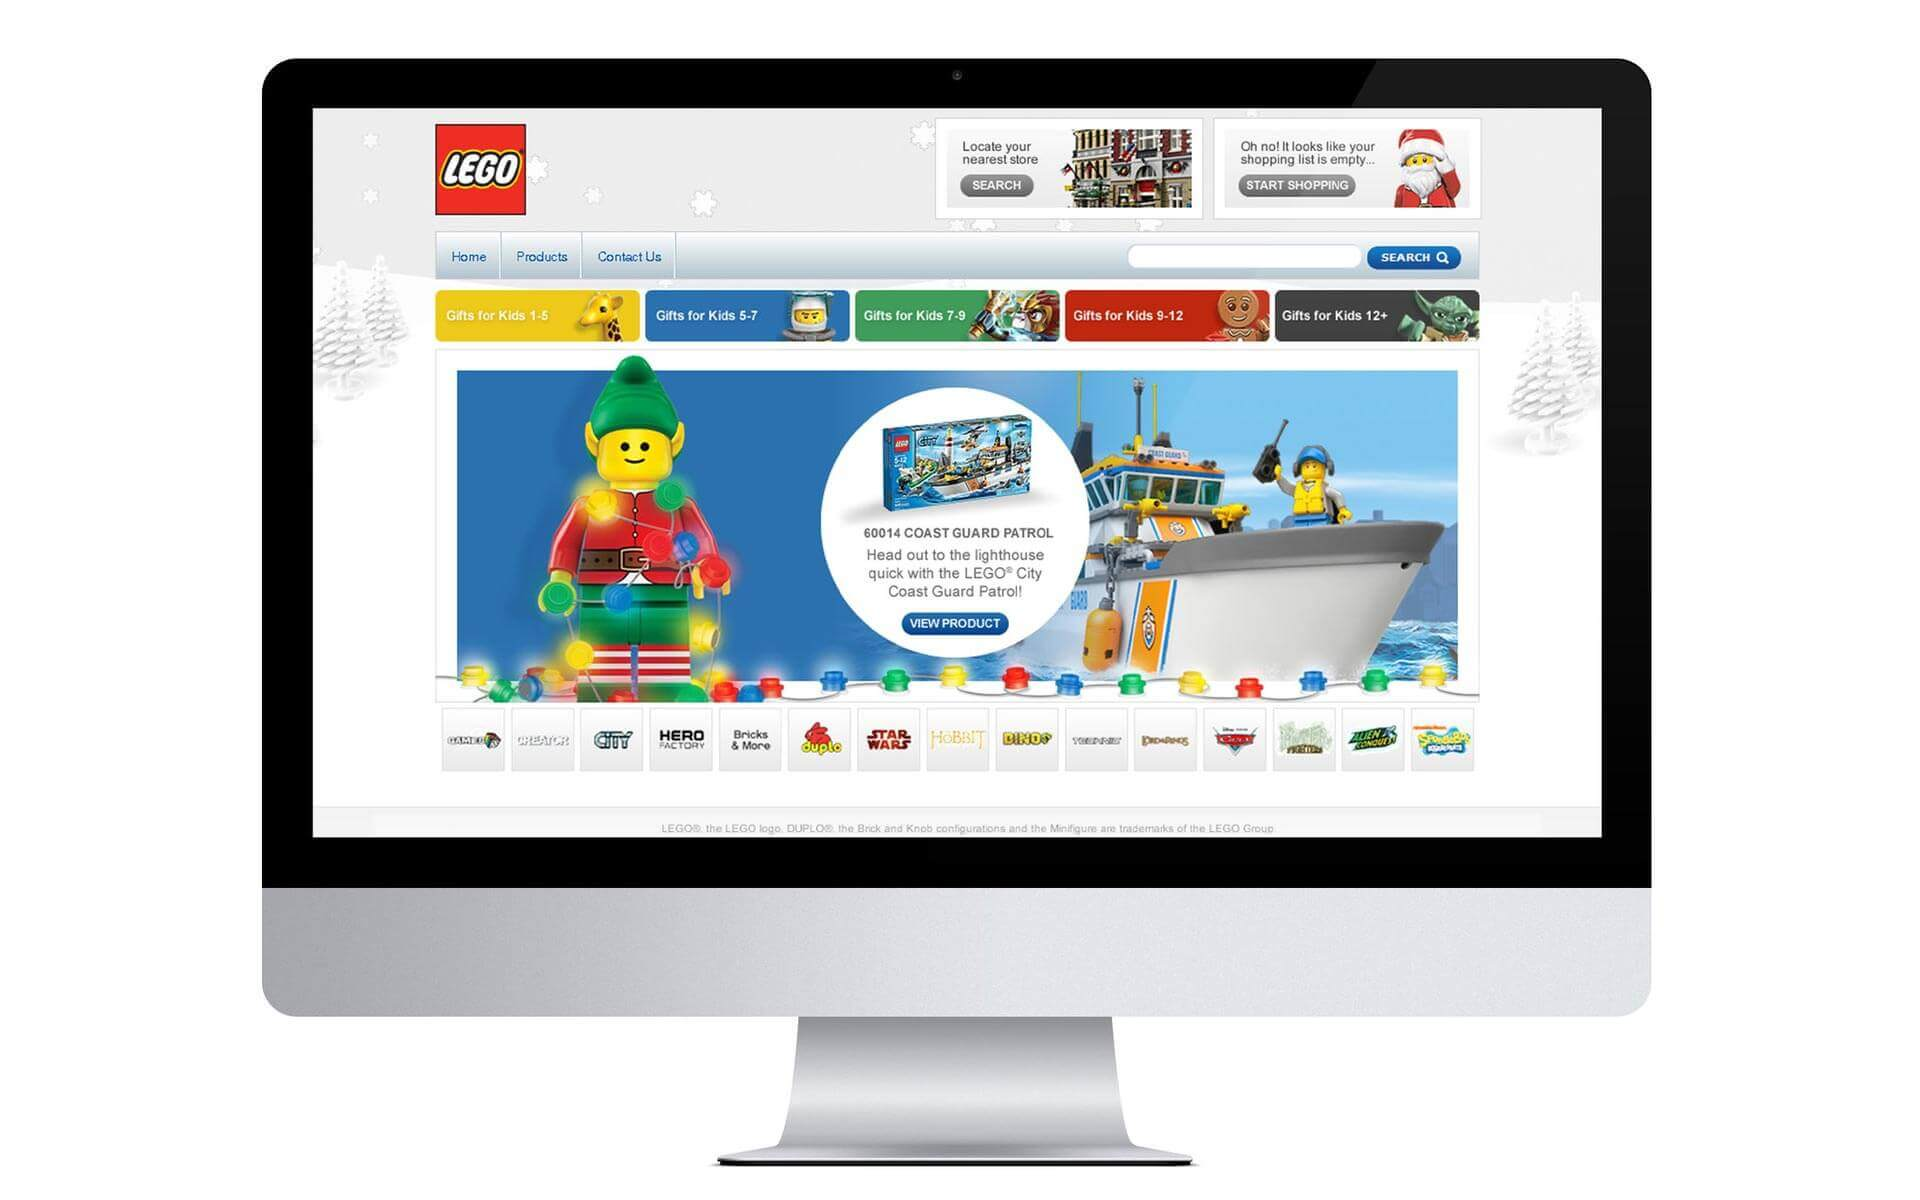 LEGO Christmas campaign, promotional website design.